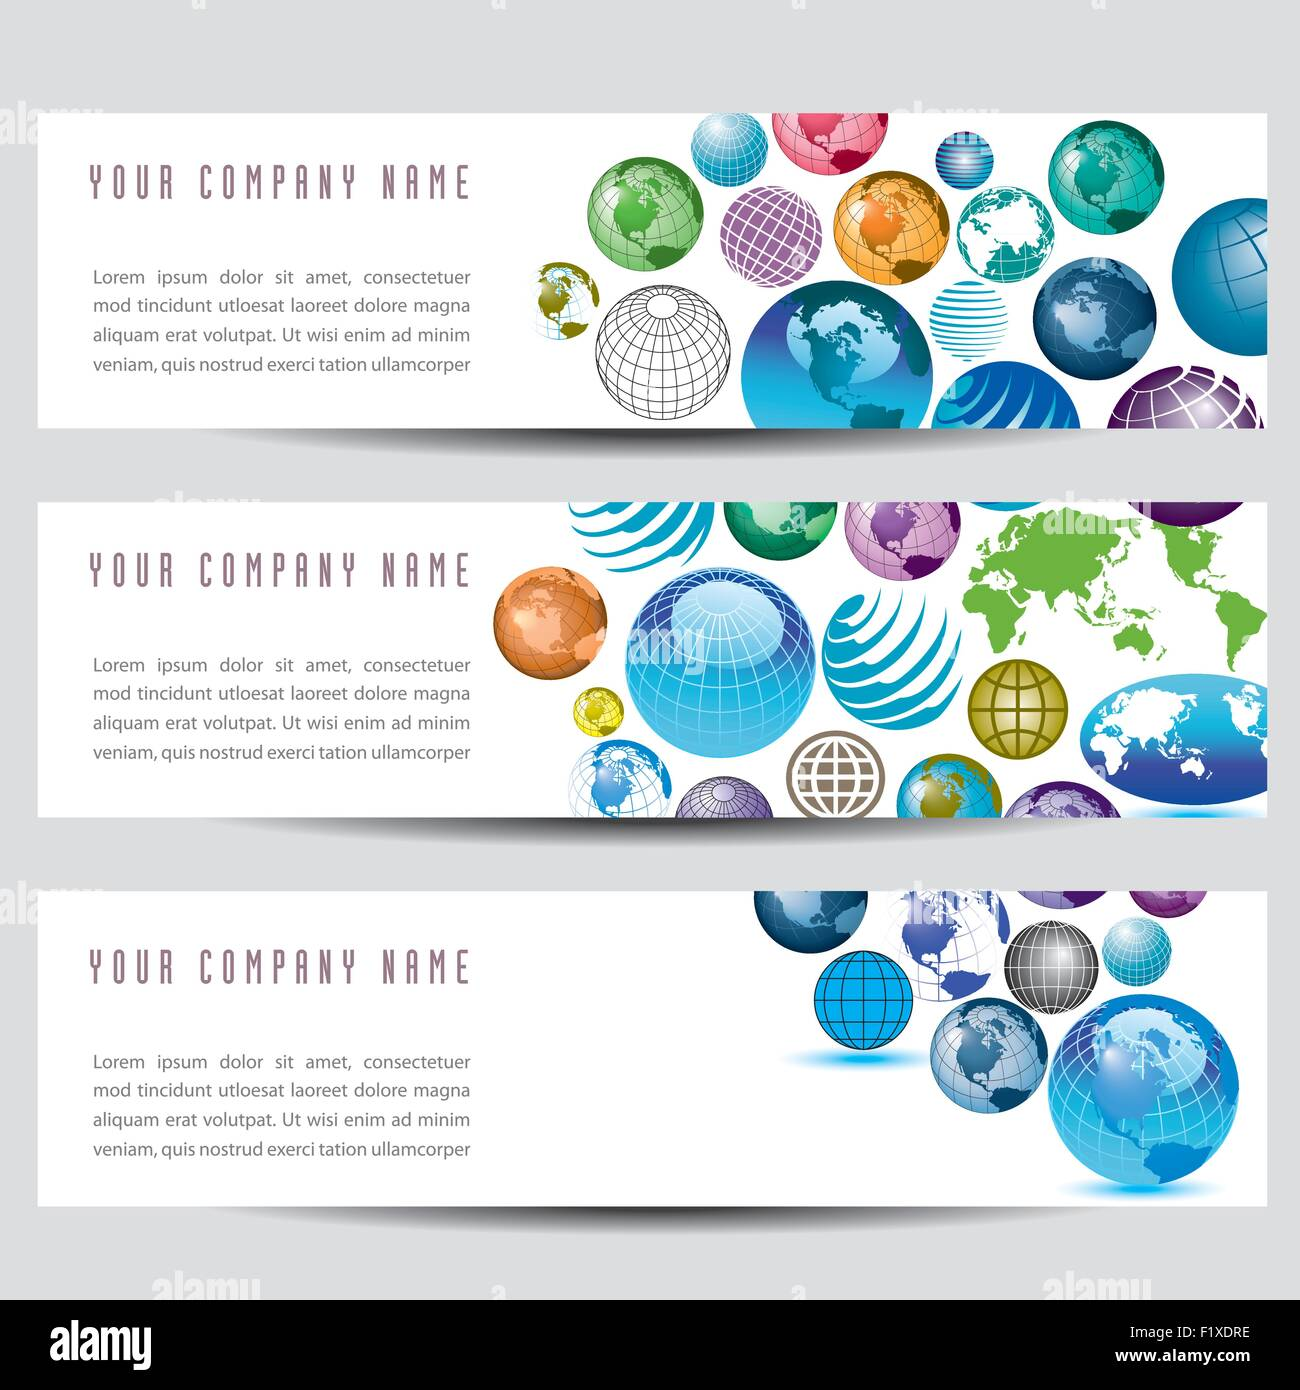 A set of globe banners - Stock Image